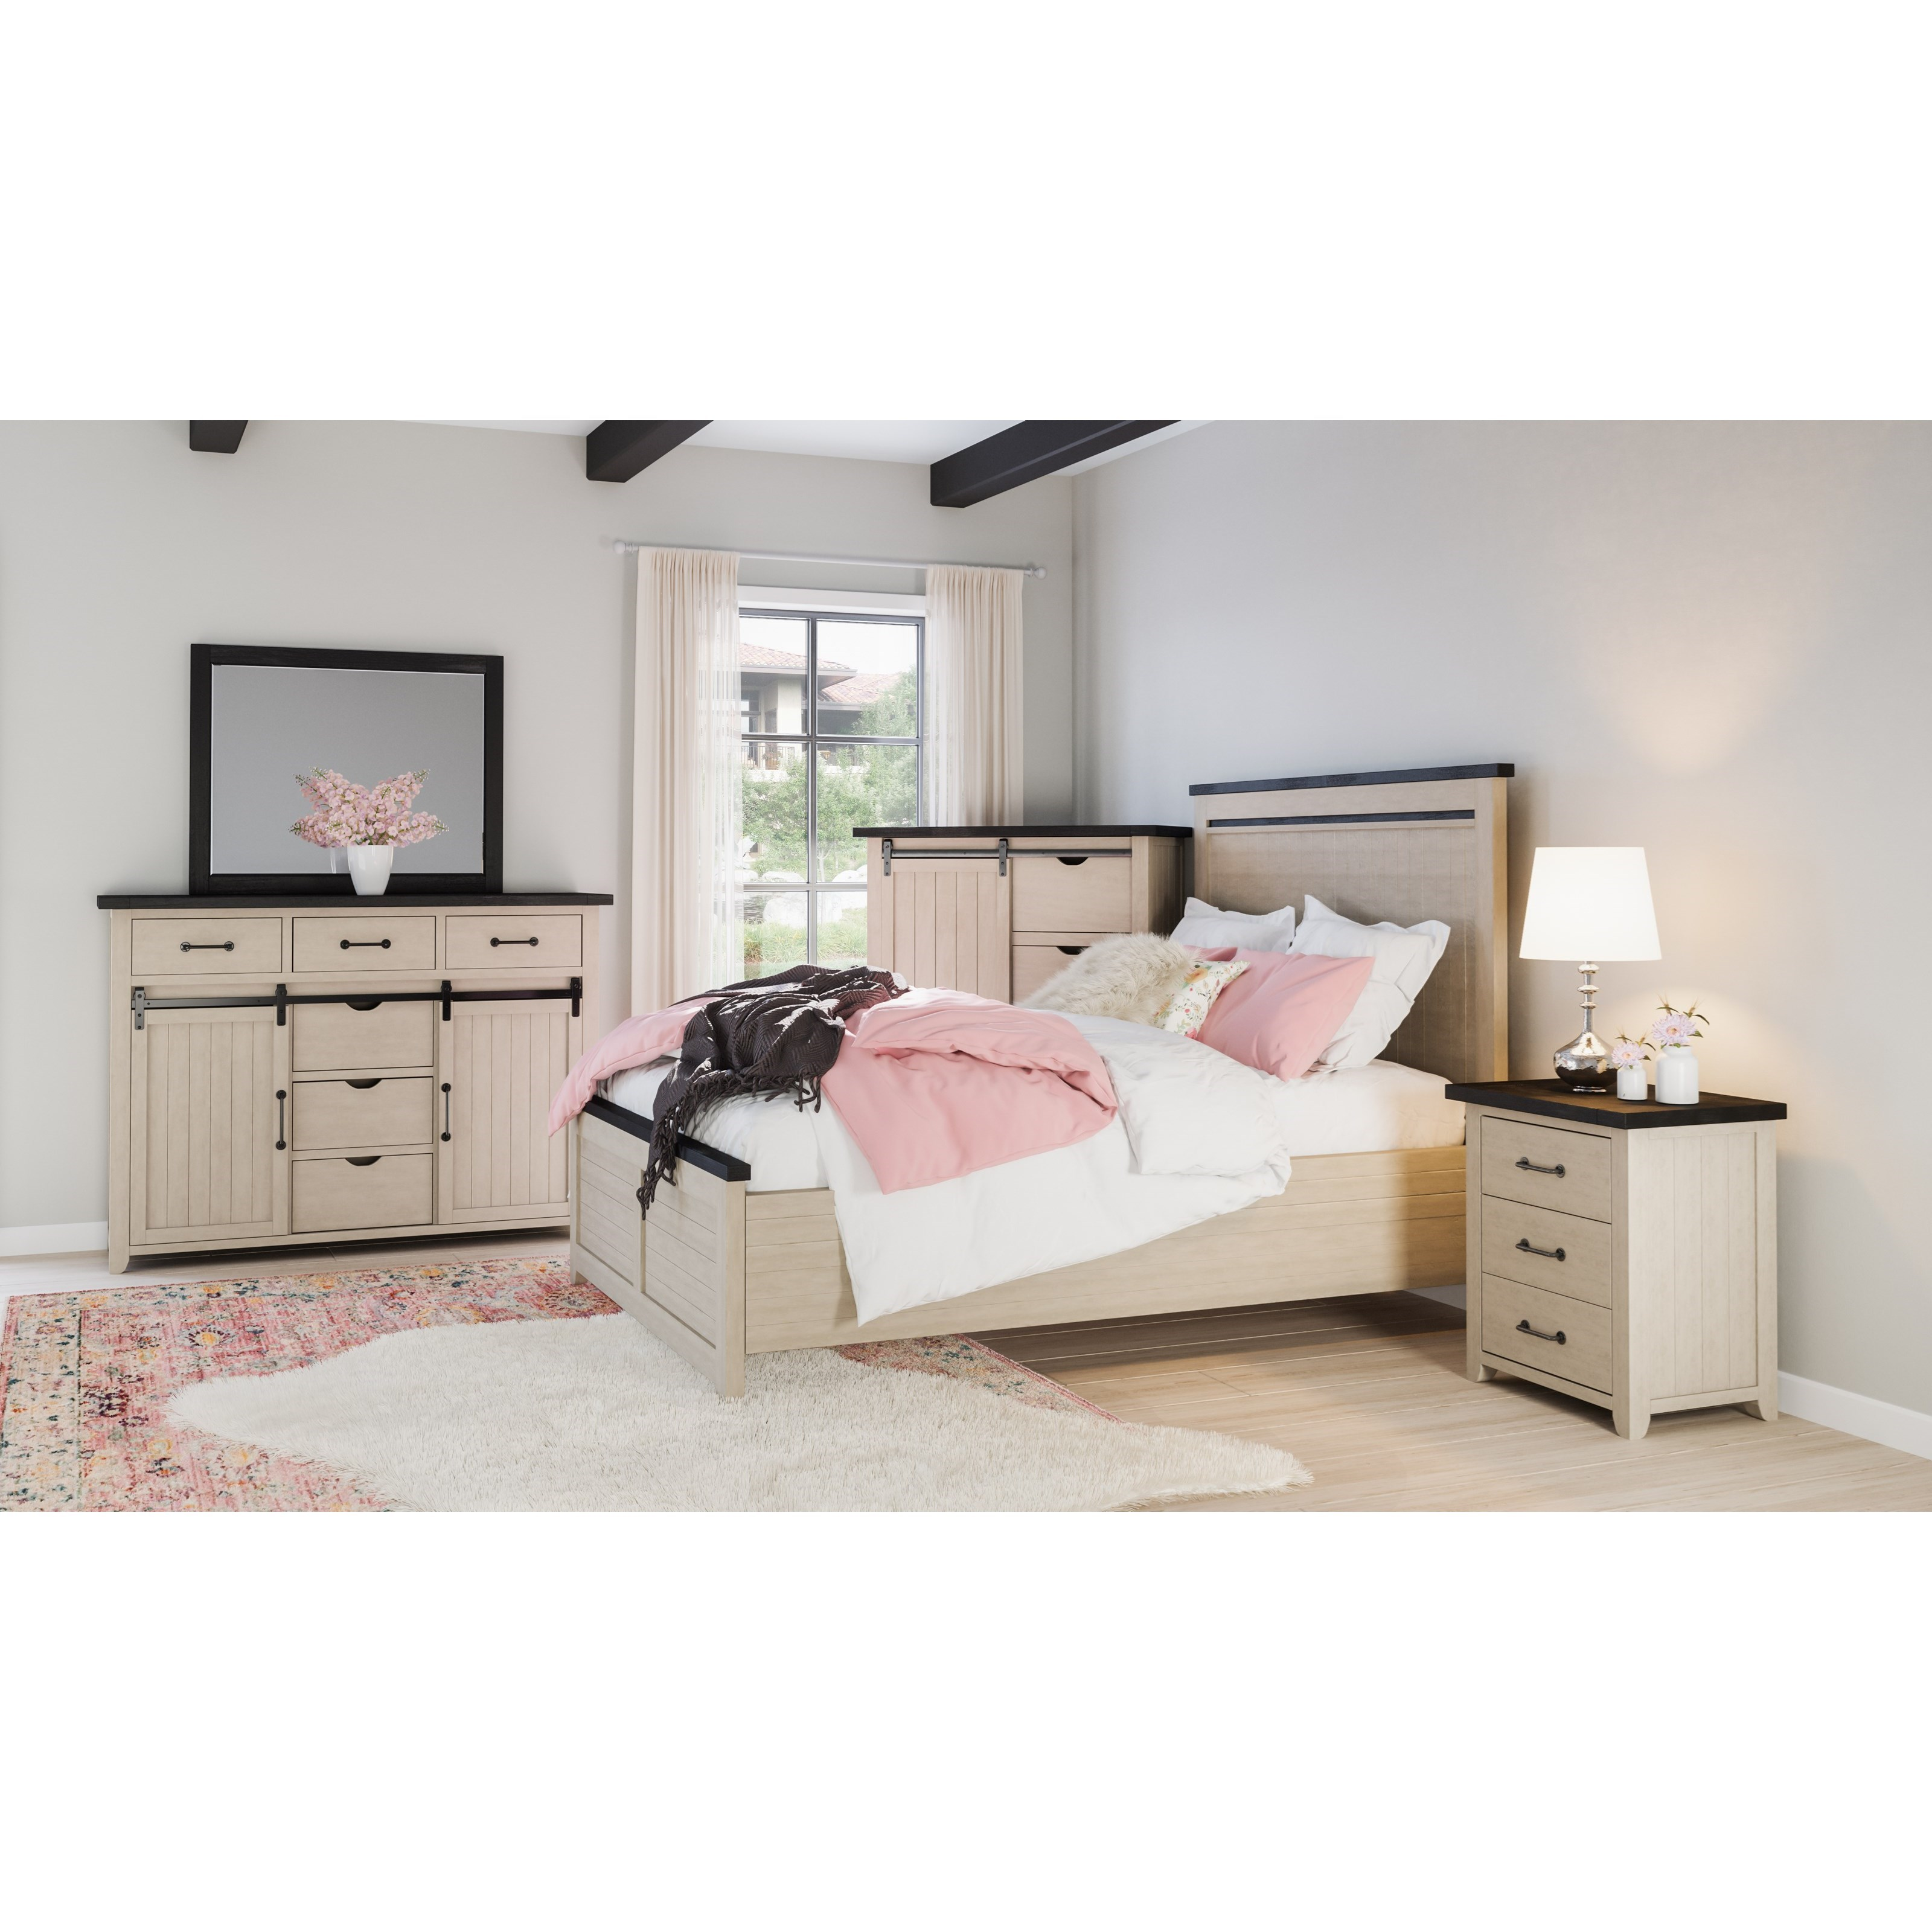 Morgan County Queen Bedroom Group by VFM Signature at Virginia Furniture Market